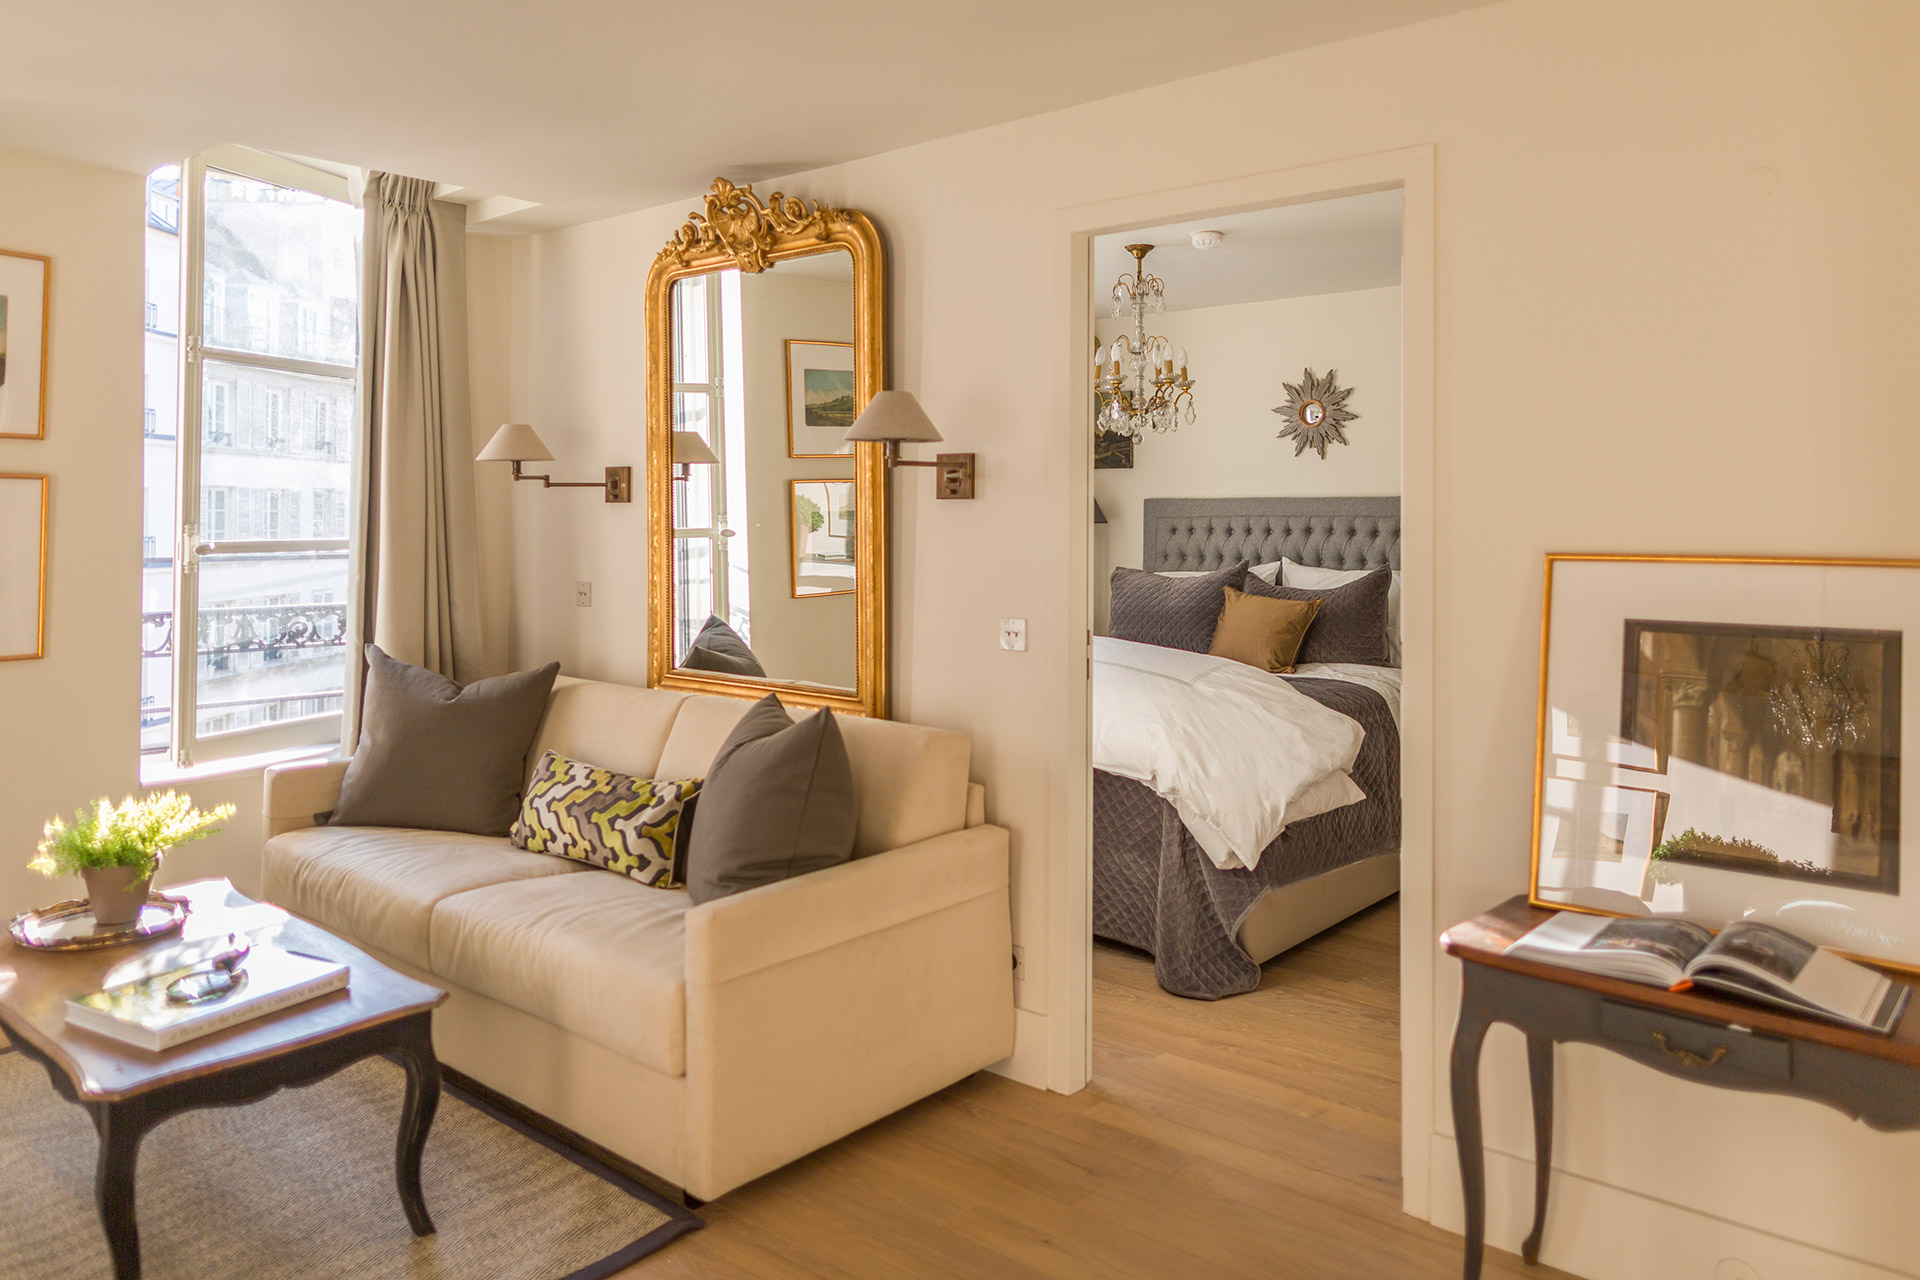 Entance to the bedroom and en suite bathroom of the Loupiac vacation rental offered by Paris Perfect